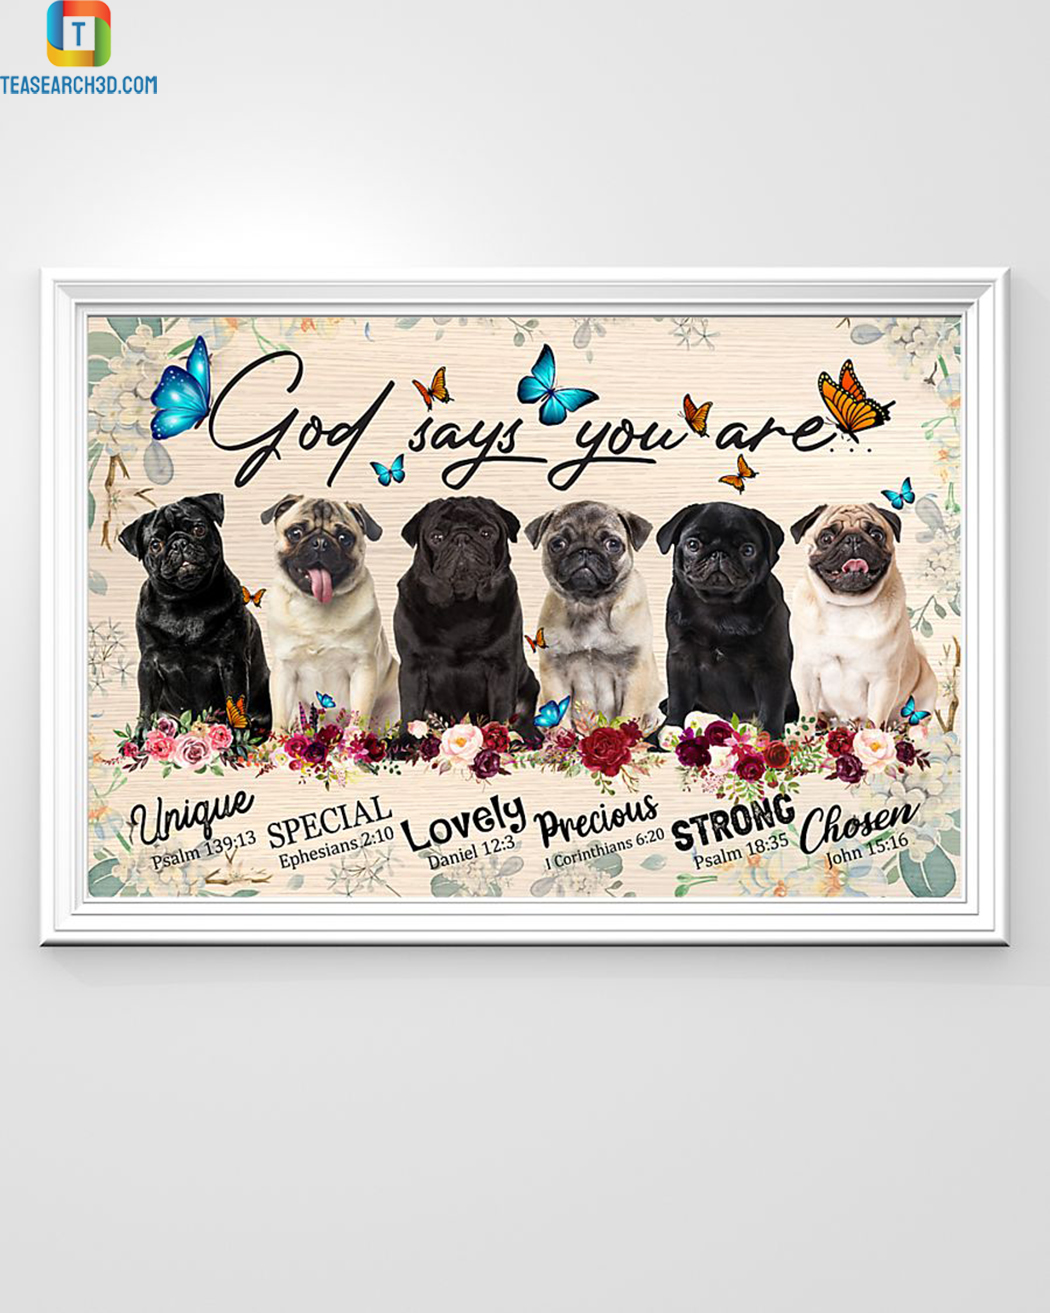 Pugs god says you are poster A1